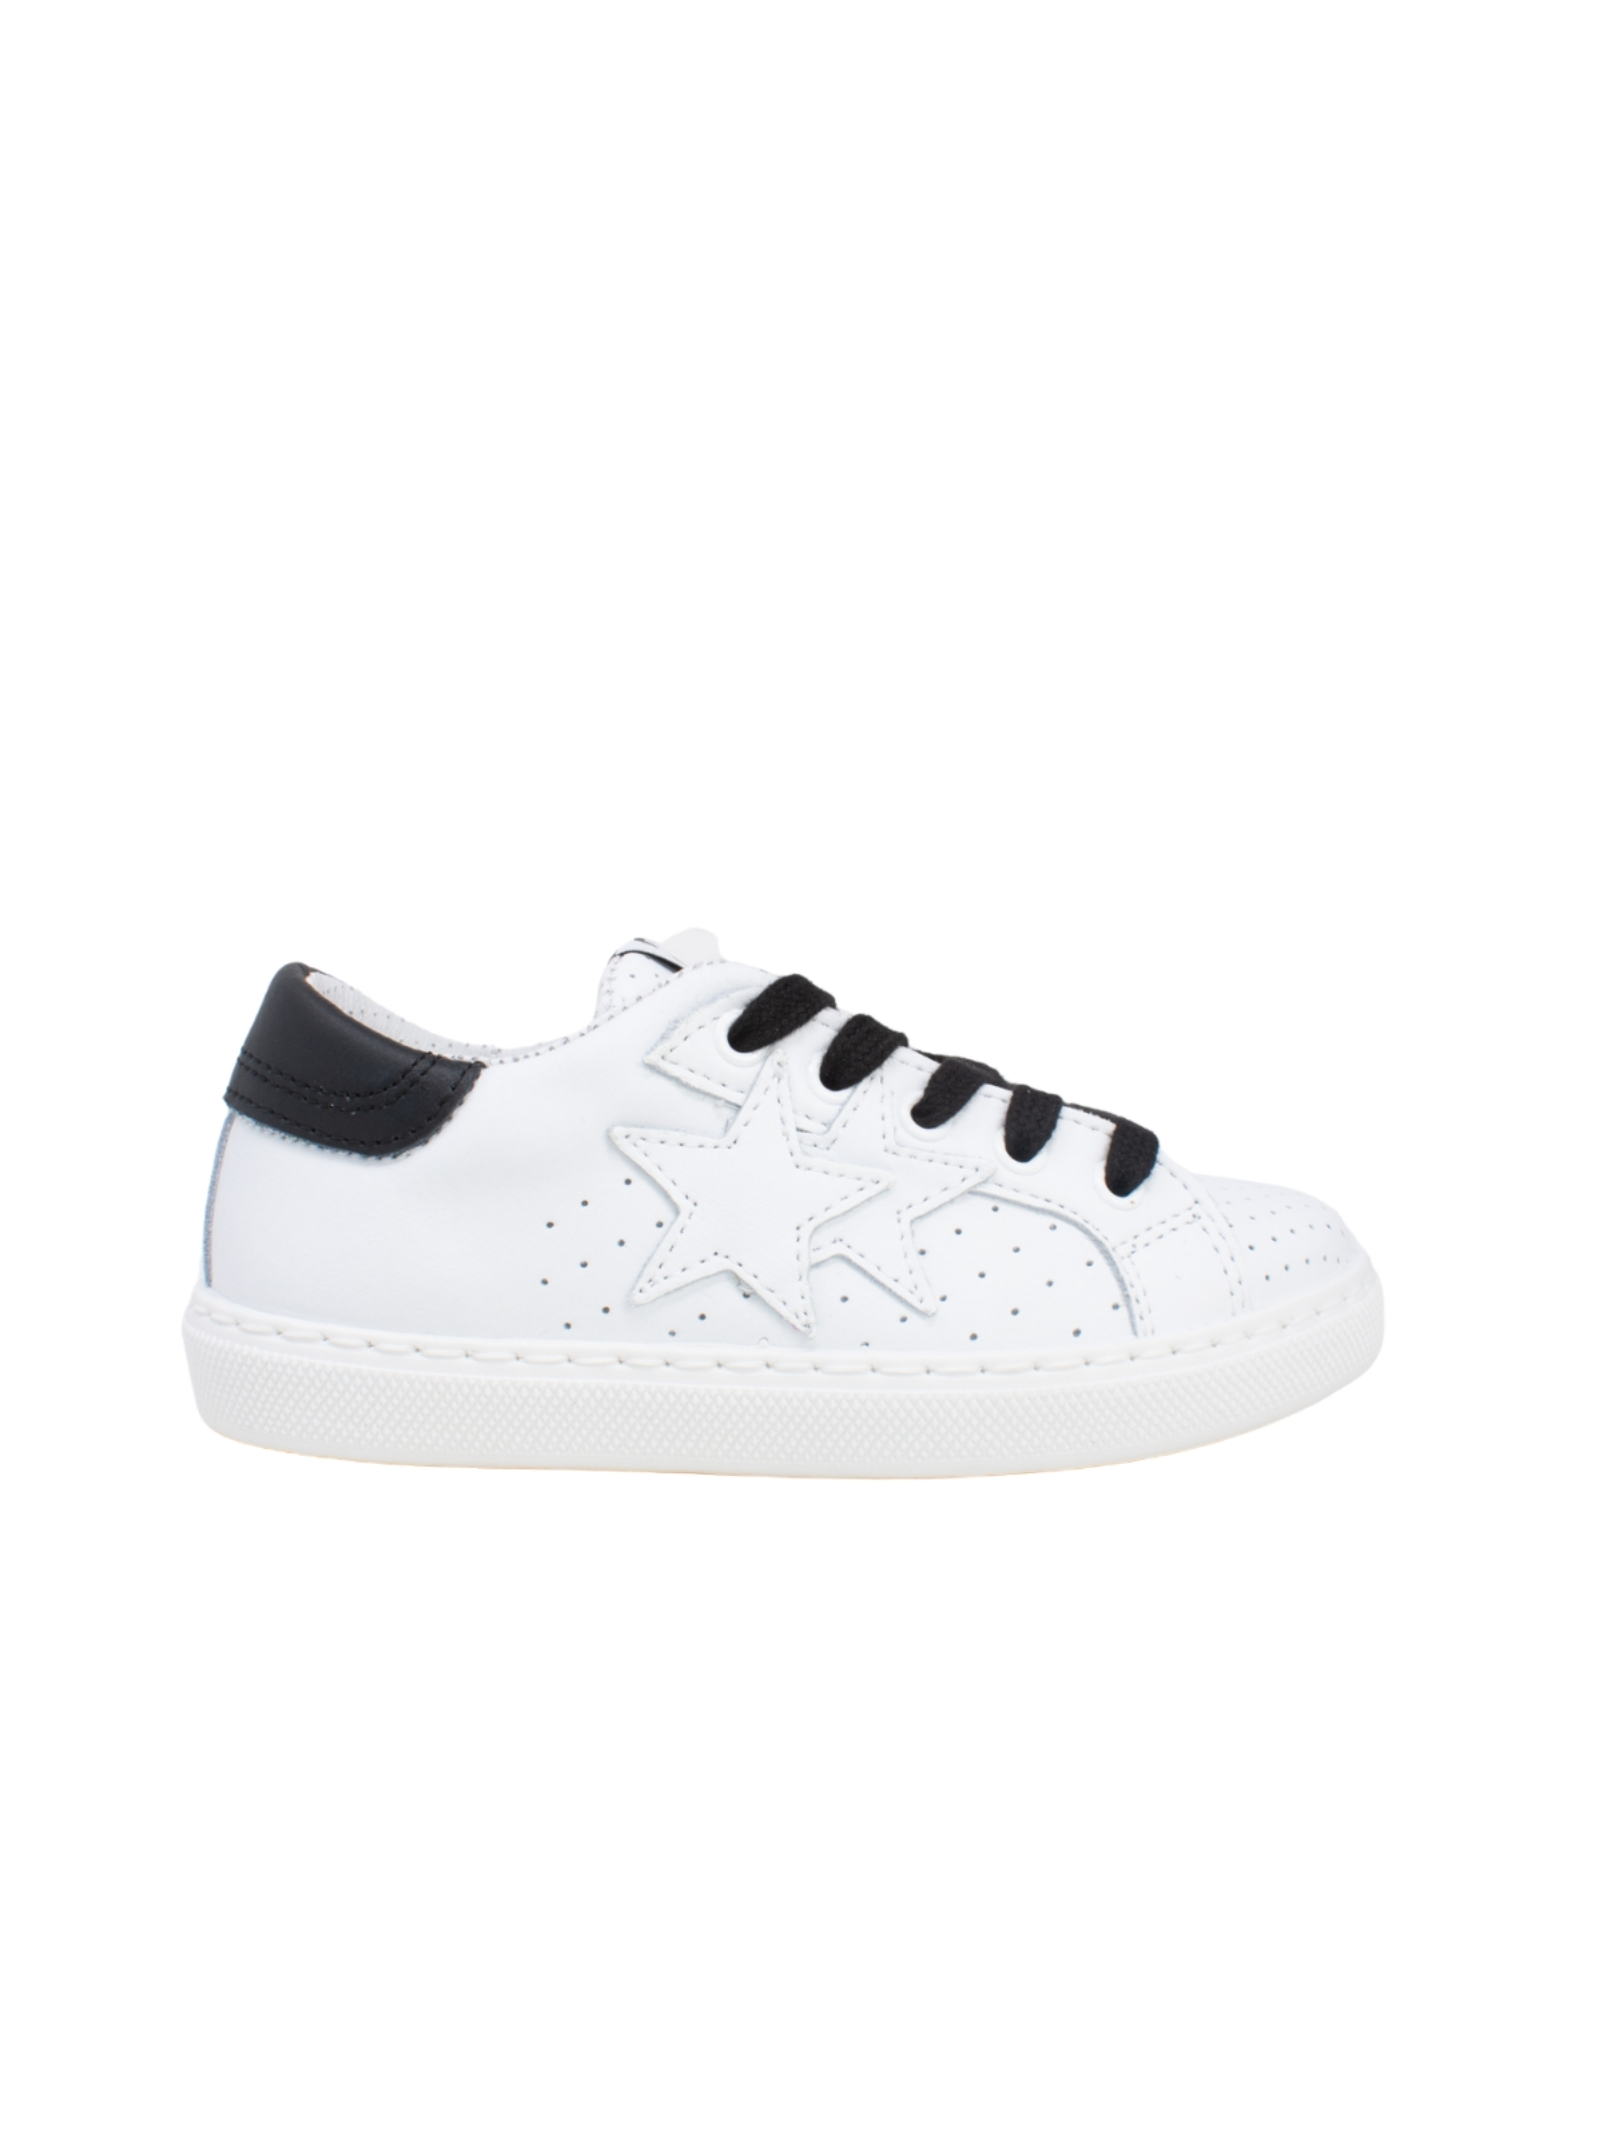 Sneakers Bambino White Low 2STAR KIDS | Sneakers | 2SB2041001